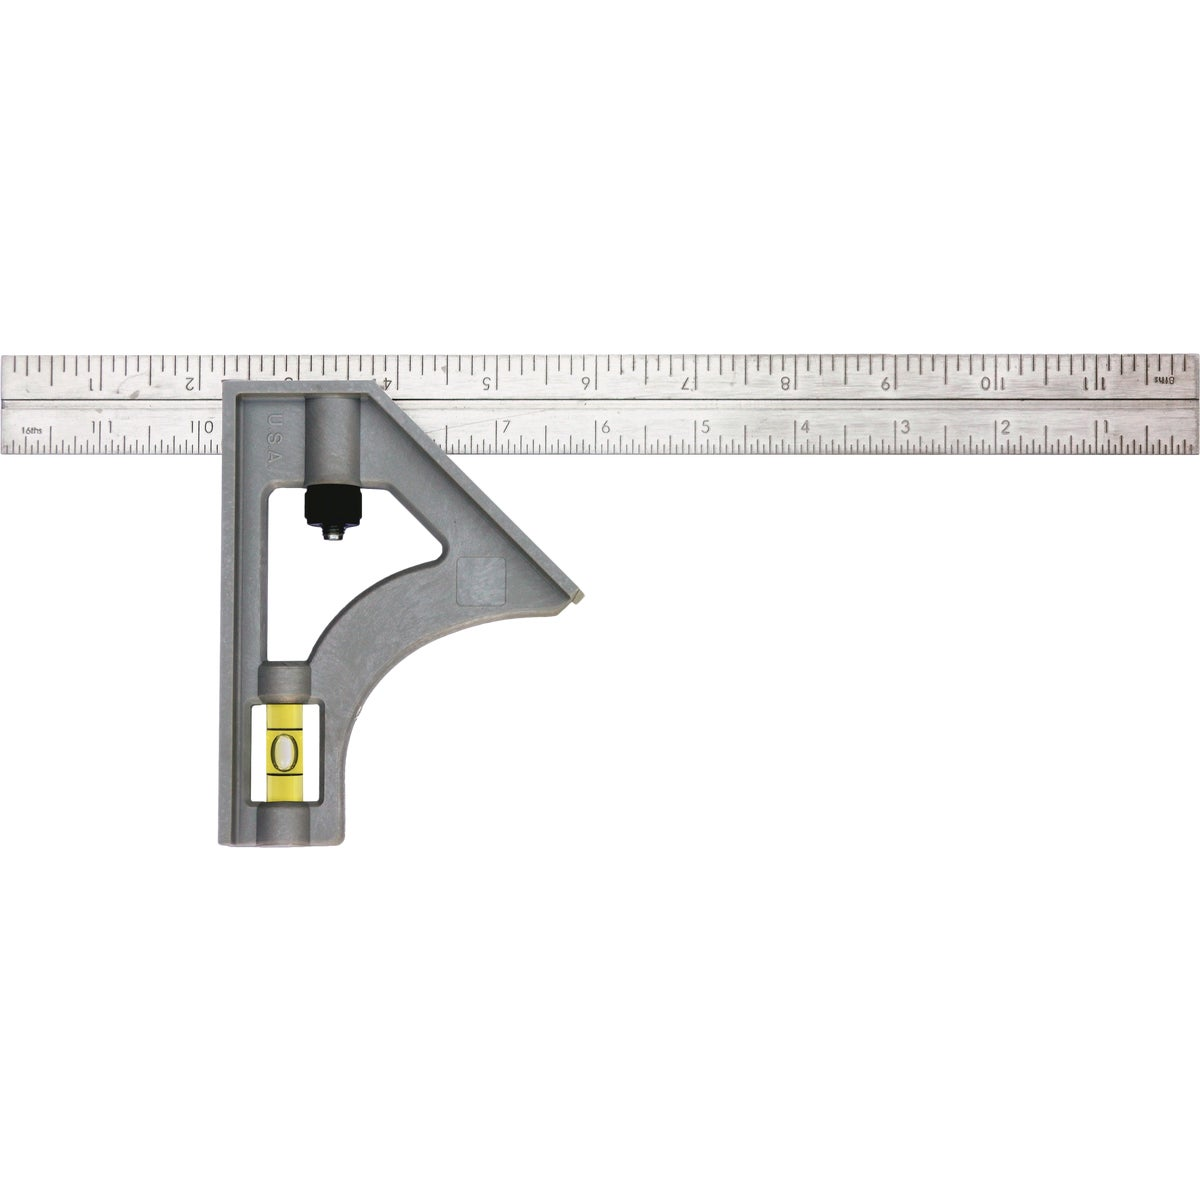 "12"" COMBO SQUARE - 415 by Johnson Level & Tool"